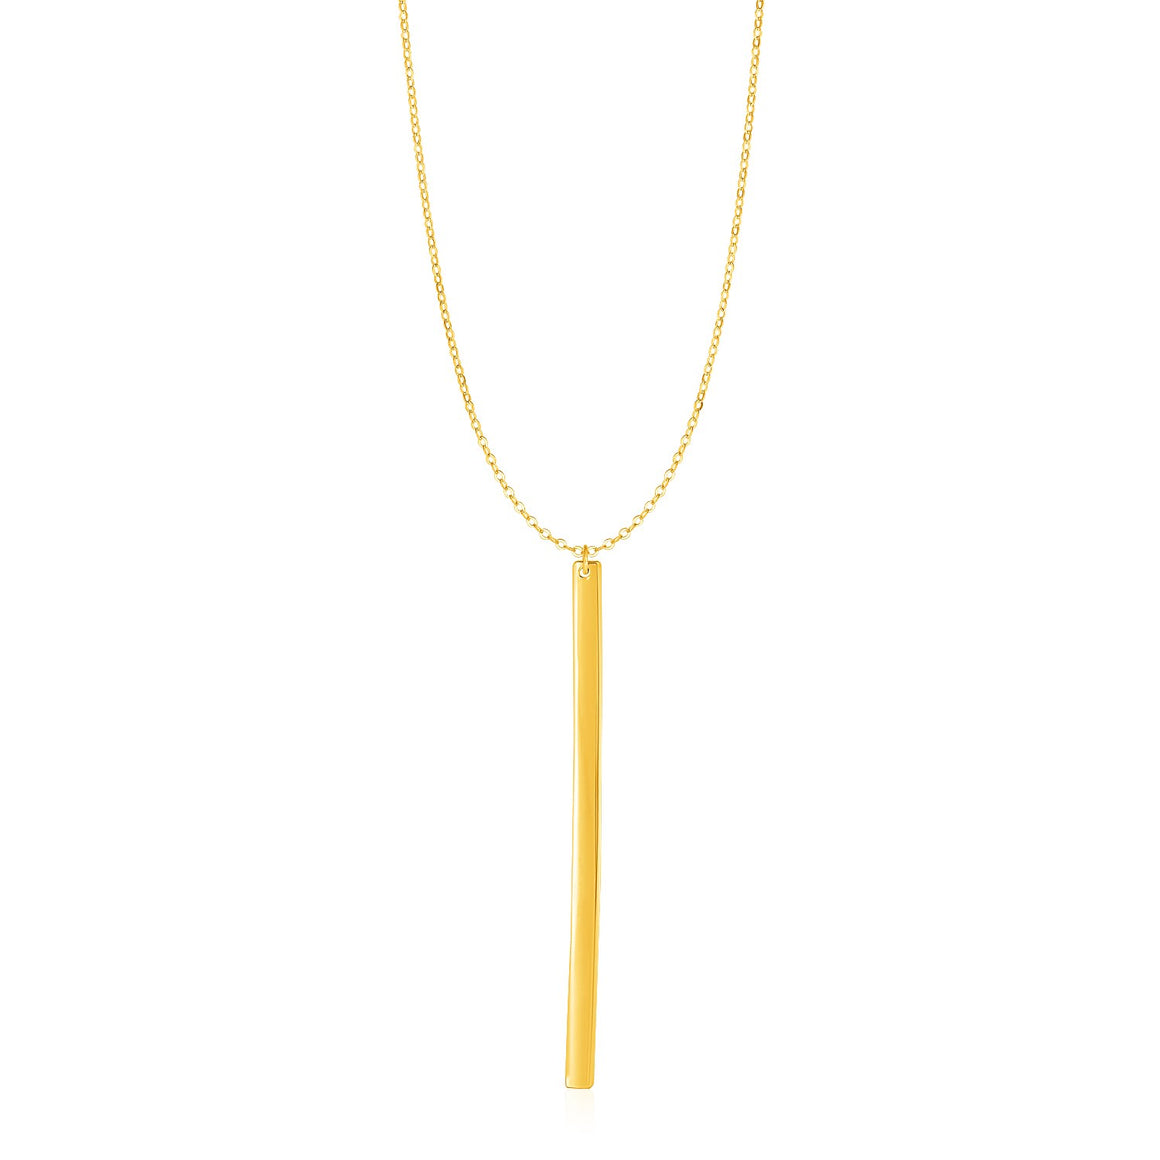 Necklace with Long Bar Pendant in 14k Yellow Gold